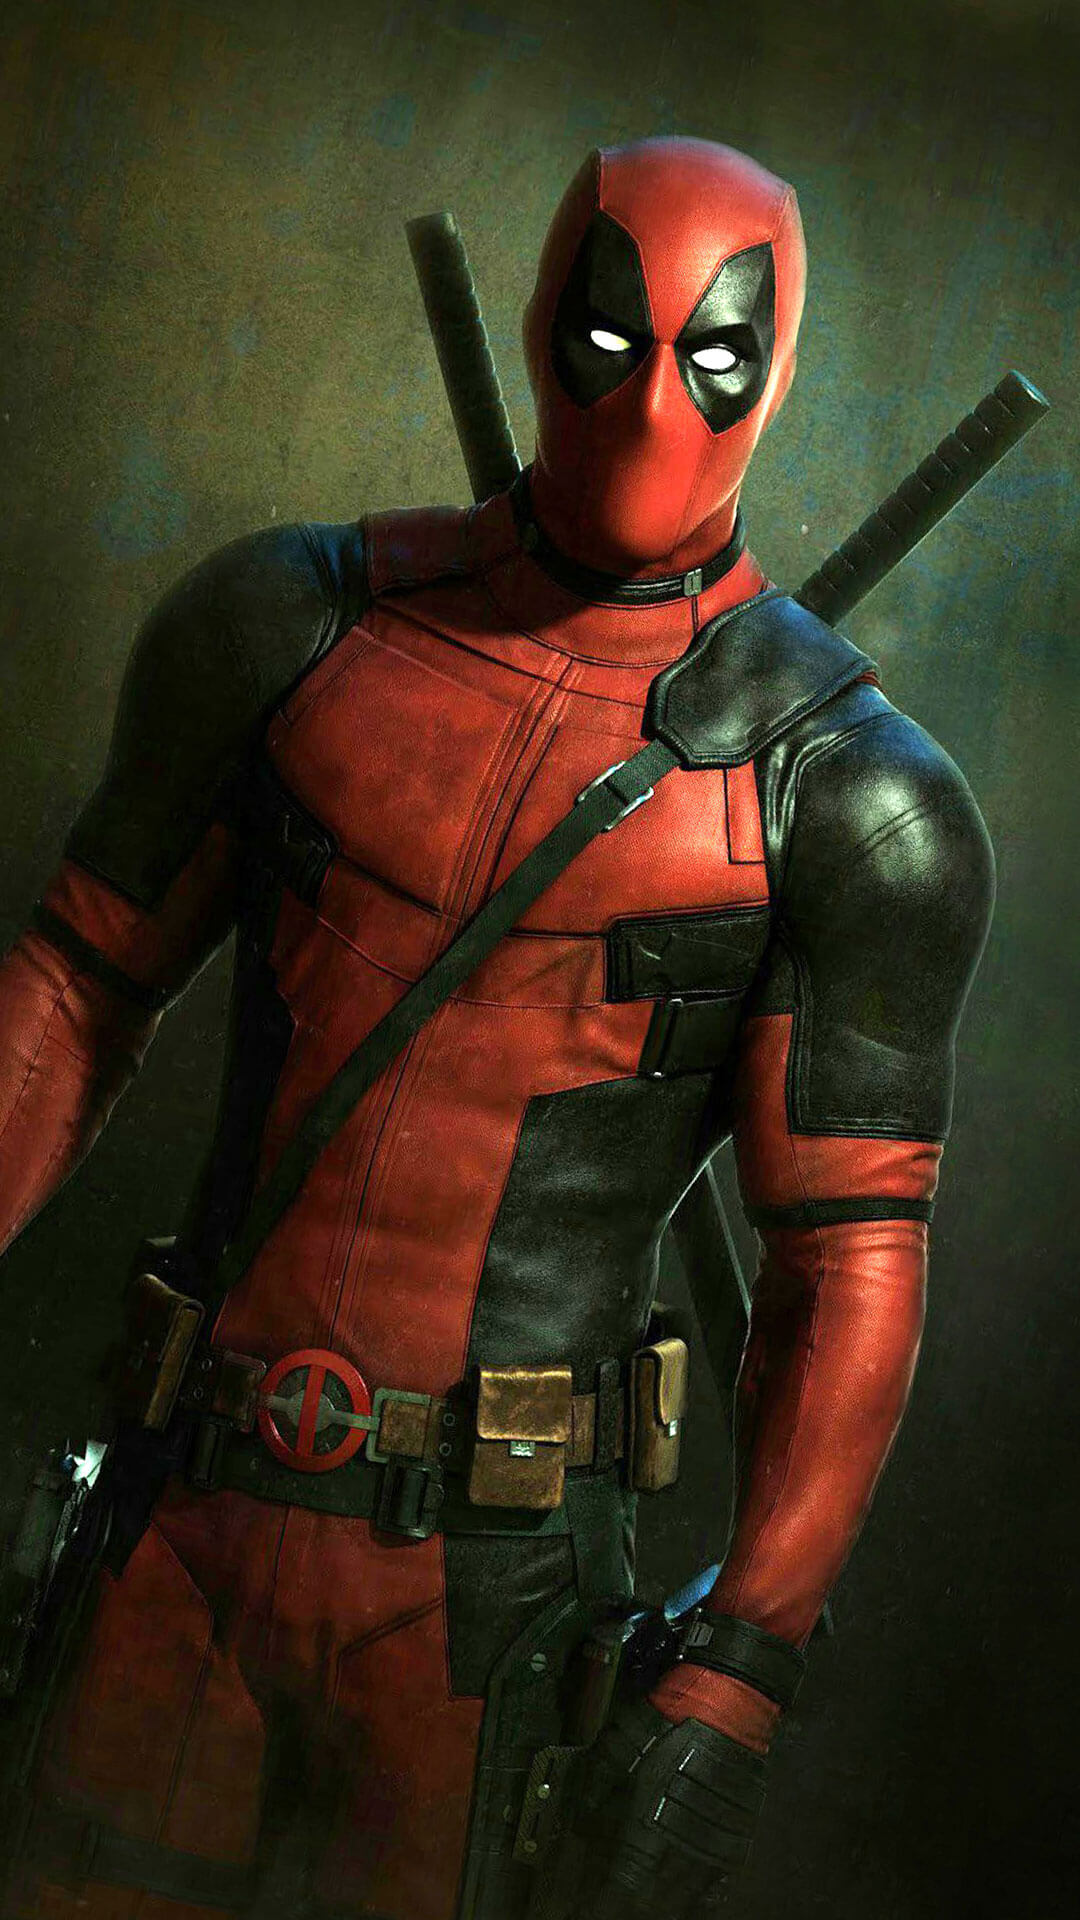 Deadpool iphone 6 wallpaper wallpapersafari - Superhero iphone wallpaper hd ...